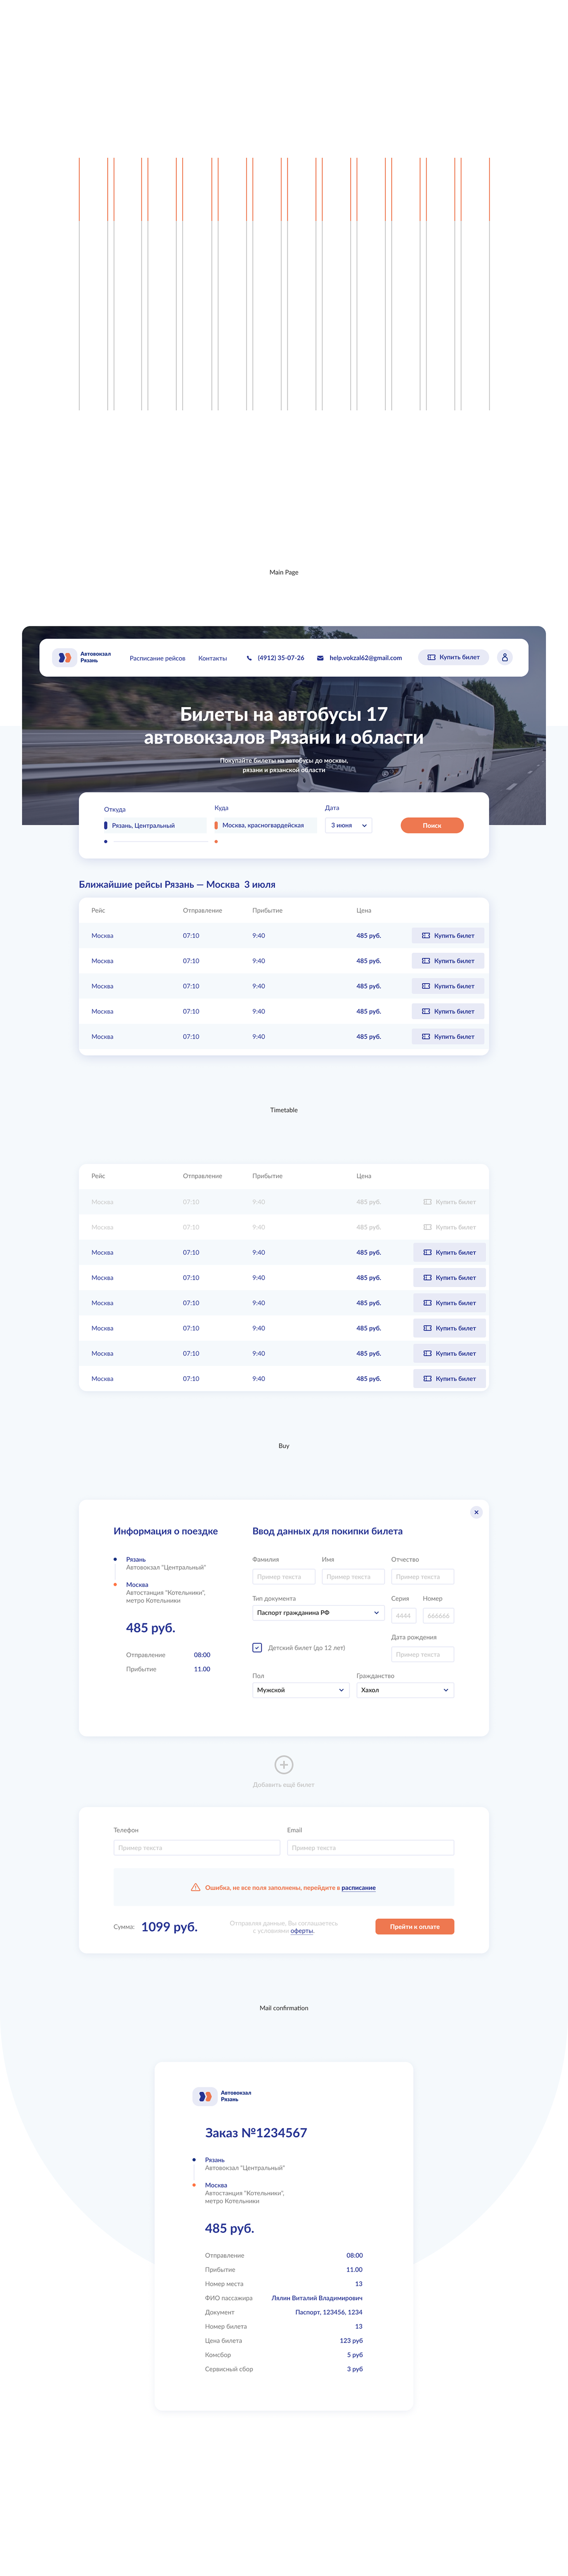 service tickets Web cleen Cleen Design product Service design UI ux web service